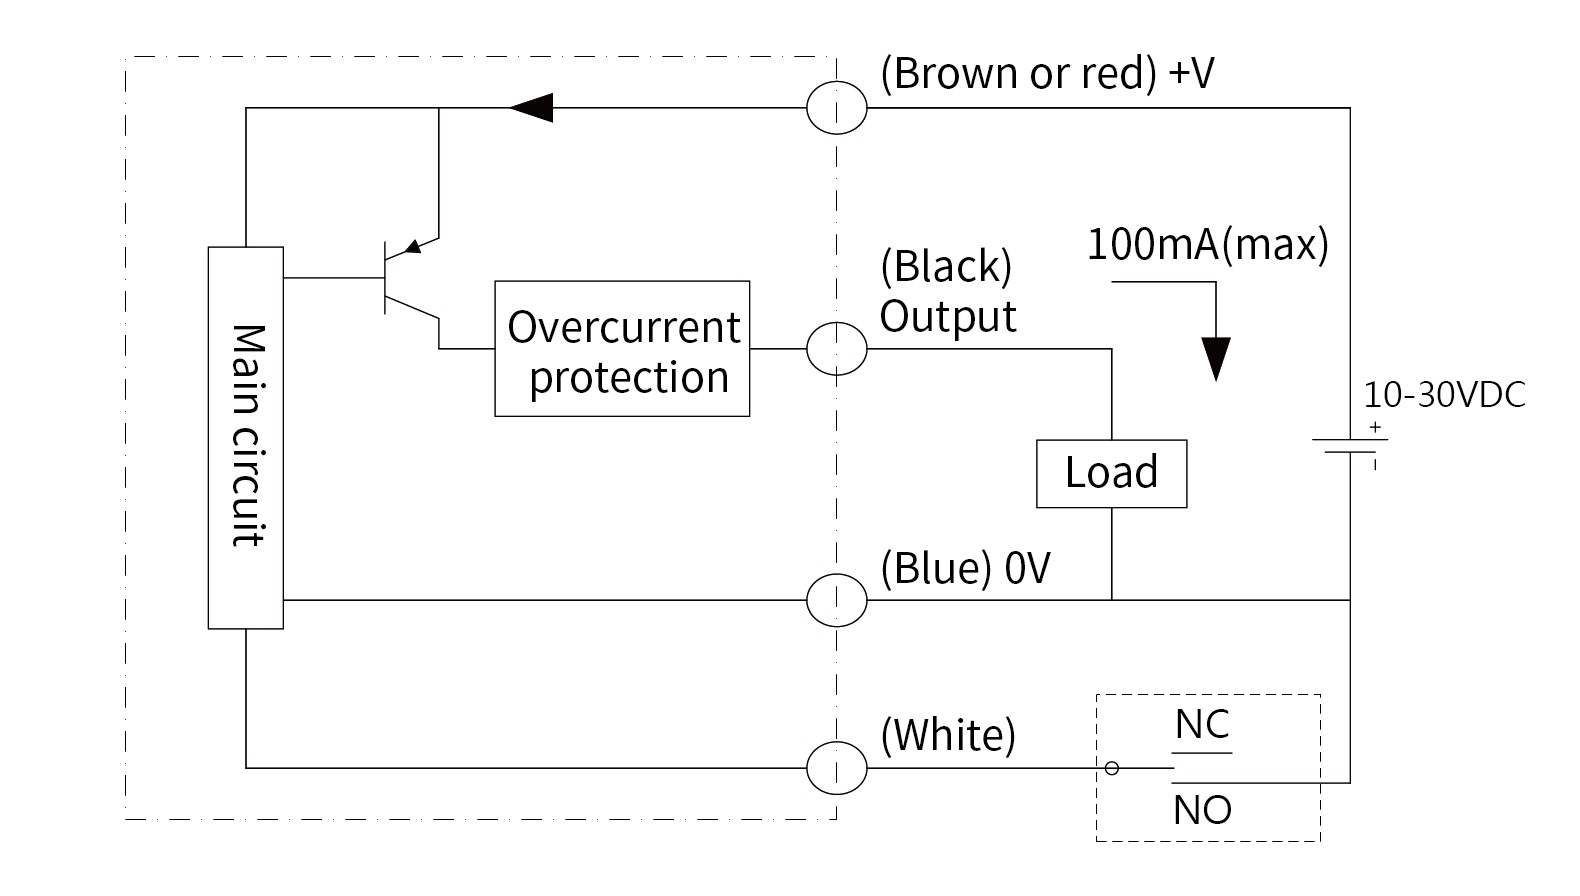 optical-liquid-level-switch-polysulfone-wiring-diagram-pnp-open-collector-output